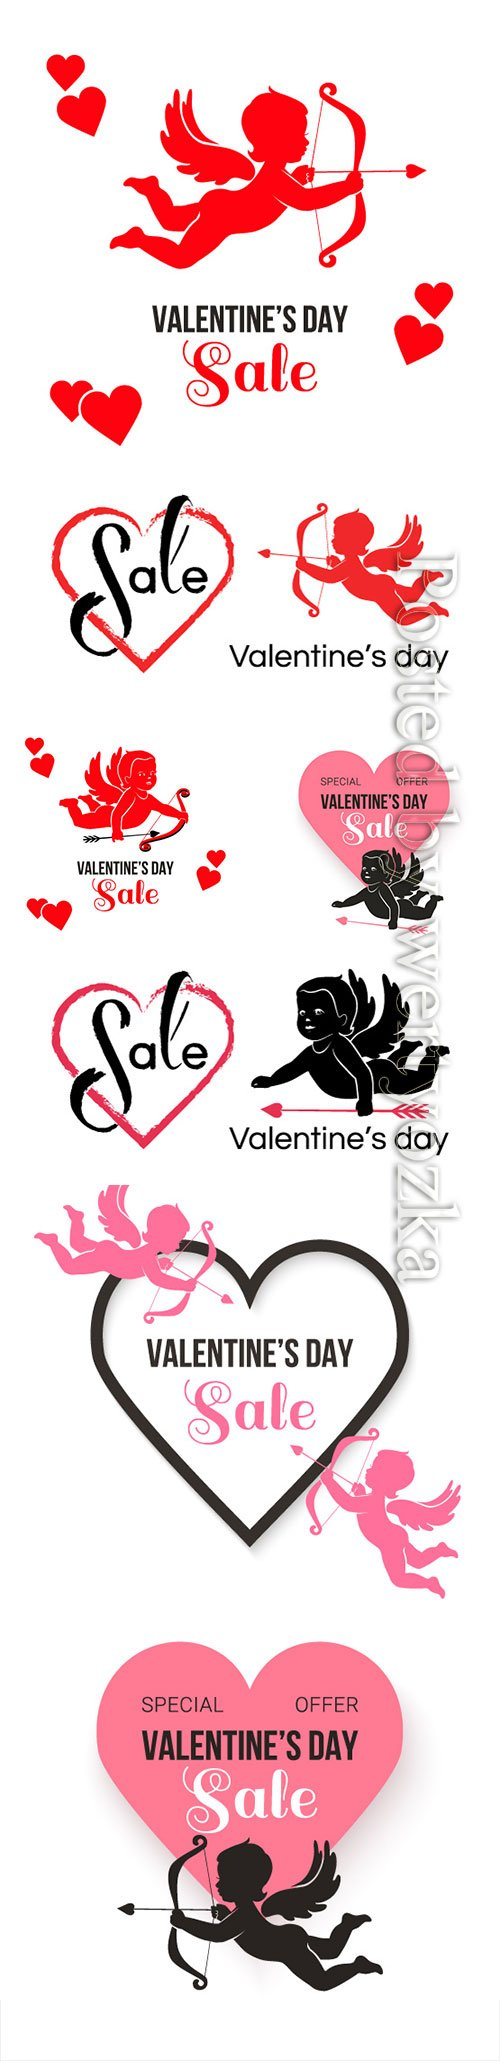 Happy Valentine's Day, vector hearts of couples in love # 21